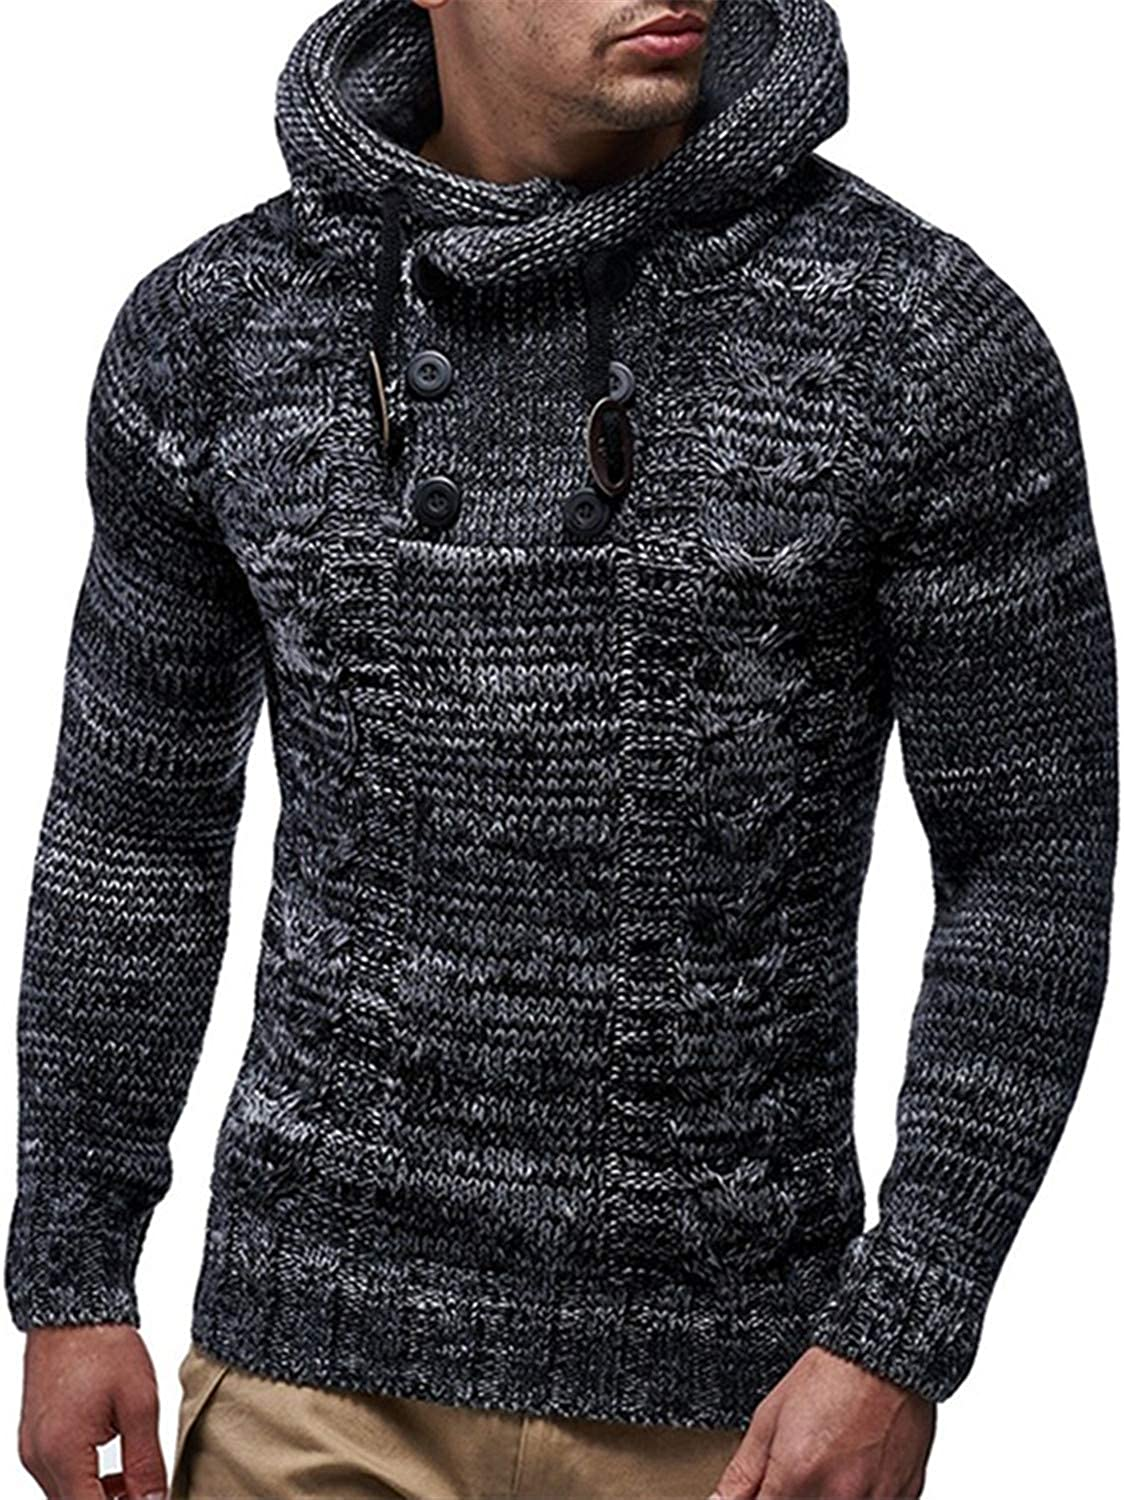 Beancan Mens Knitted Pullover Wigeo Christmas Sweater Men Twisted Double-Breasted Hooded Slim Knit Sweater